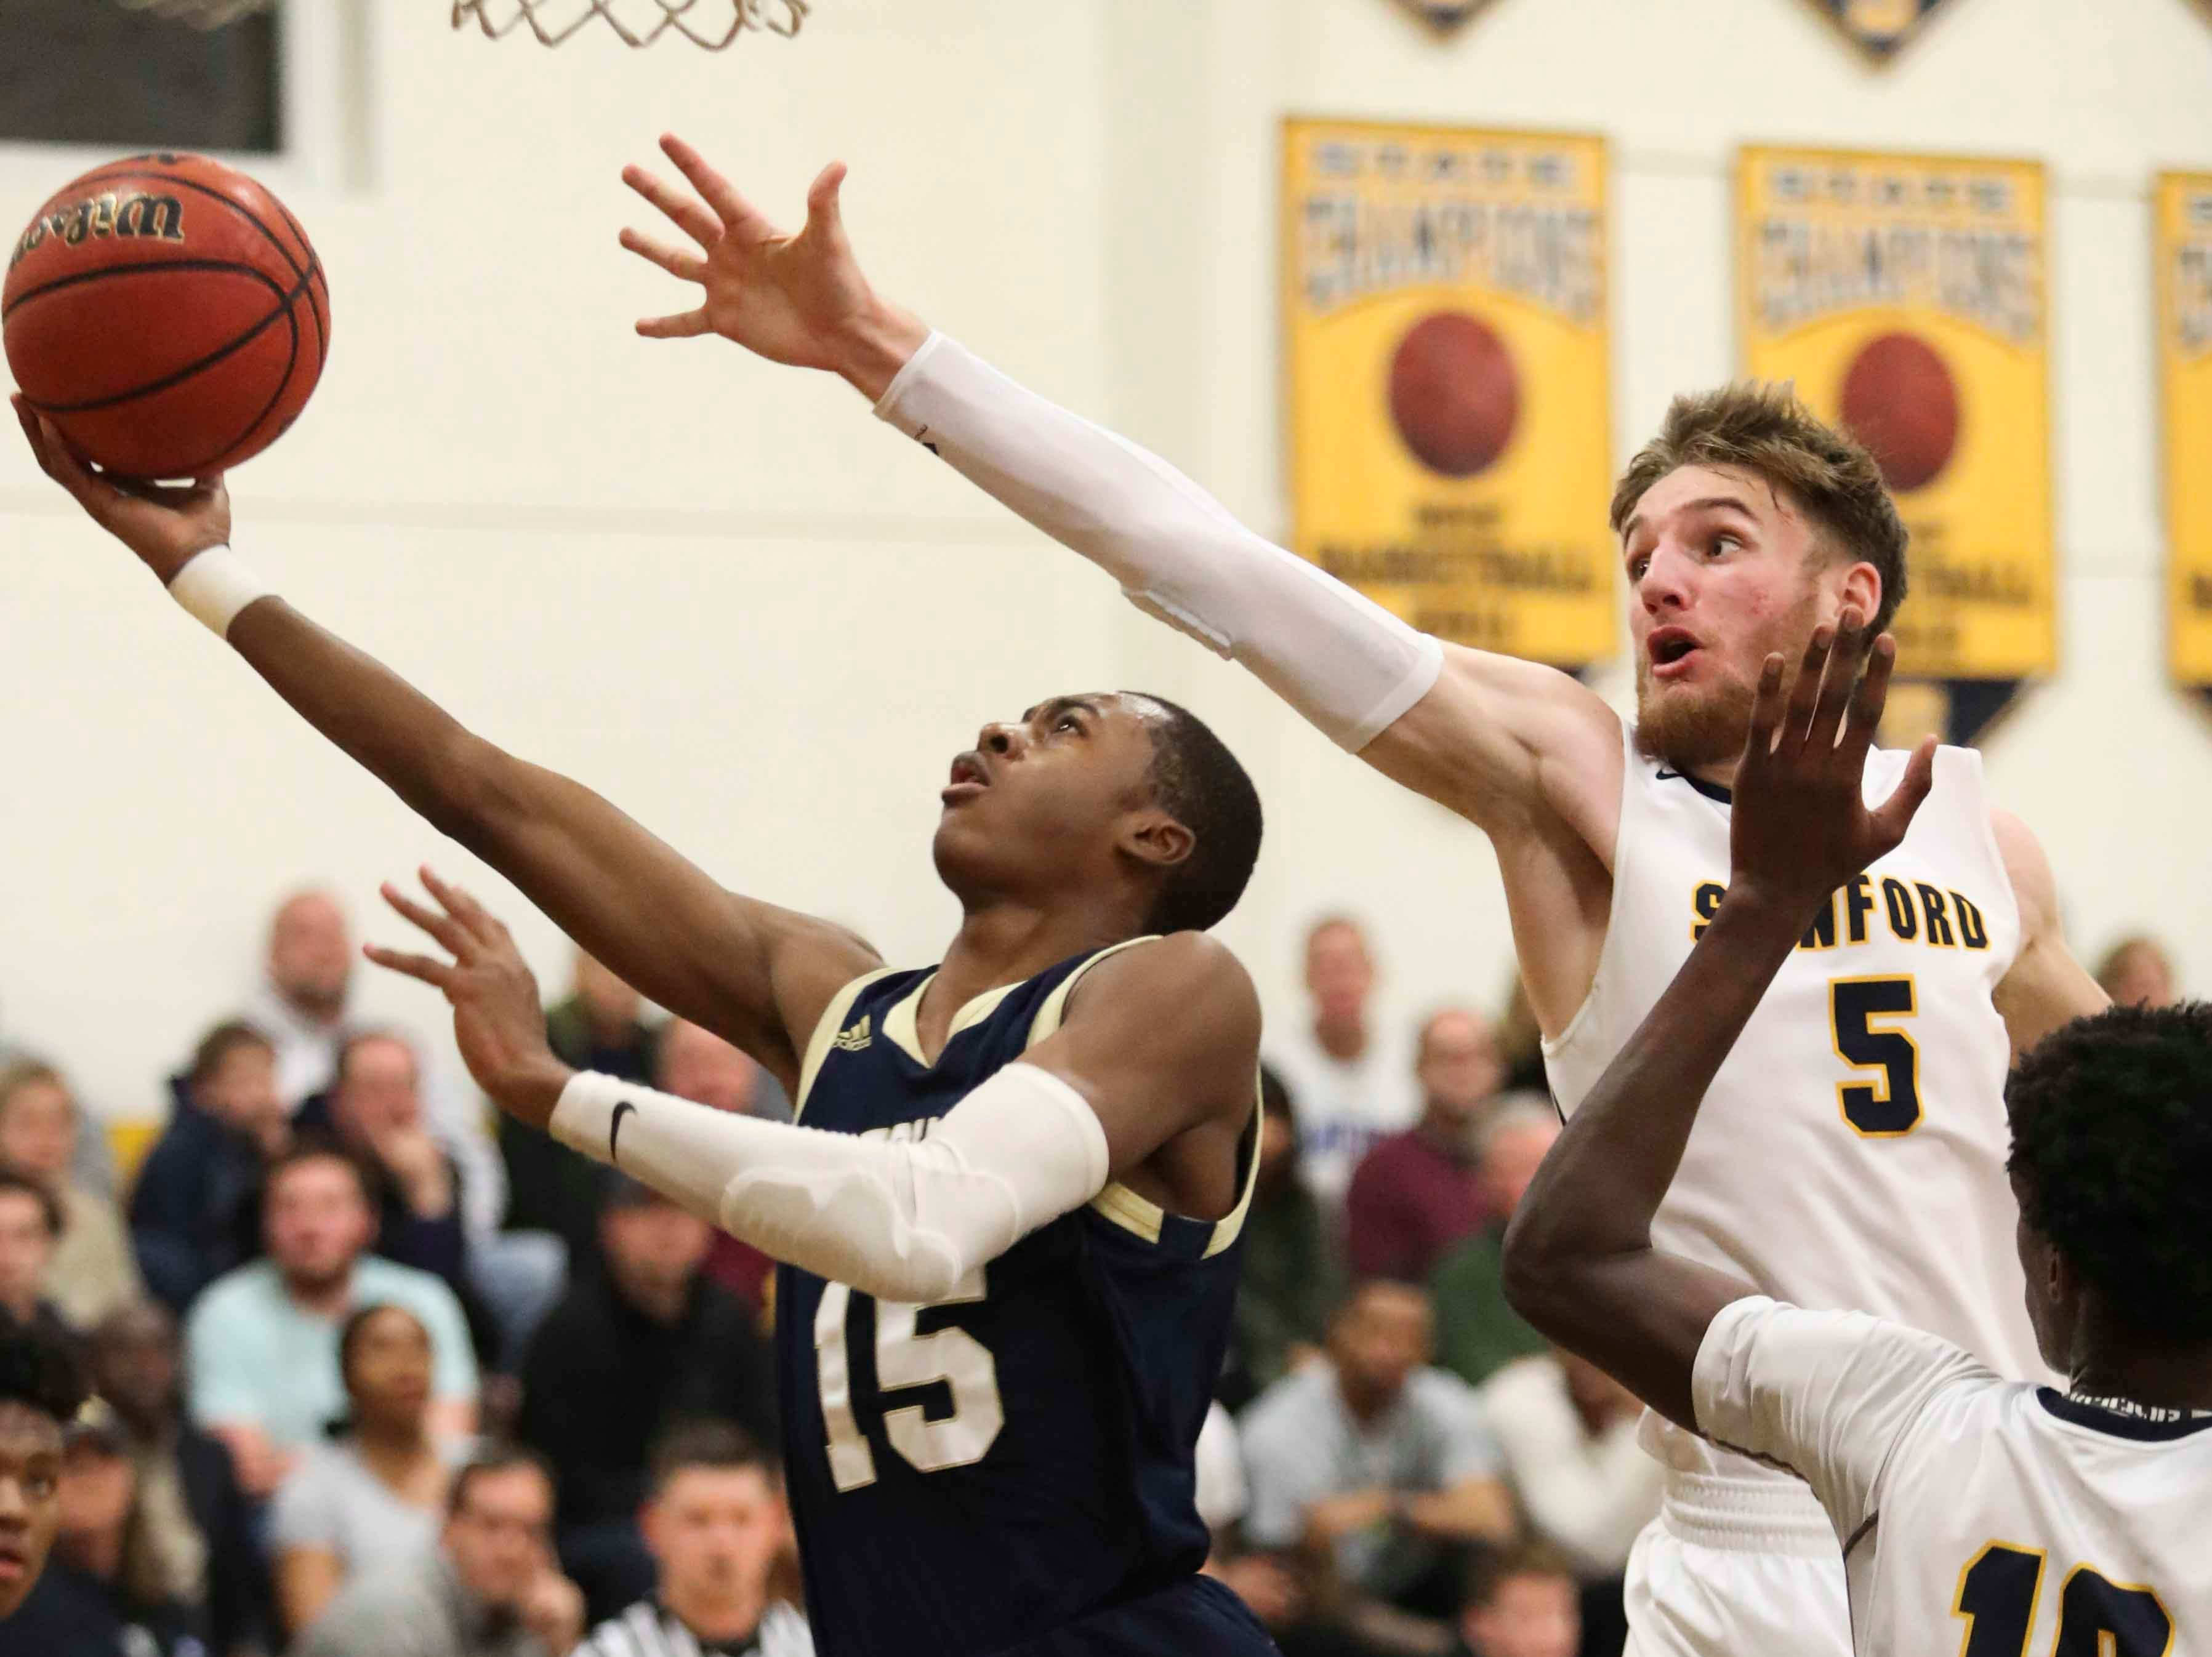 Sanford's Rasheen Caulk (left) goes to the basket as Sanford's Ryan McKeon defends during the Warriors' 65-47 win at home Friday.